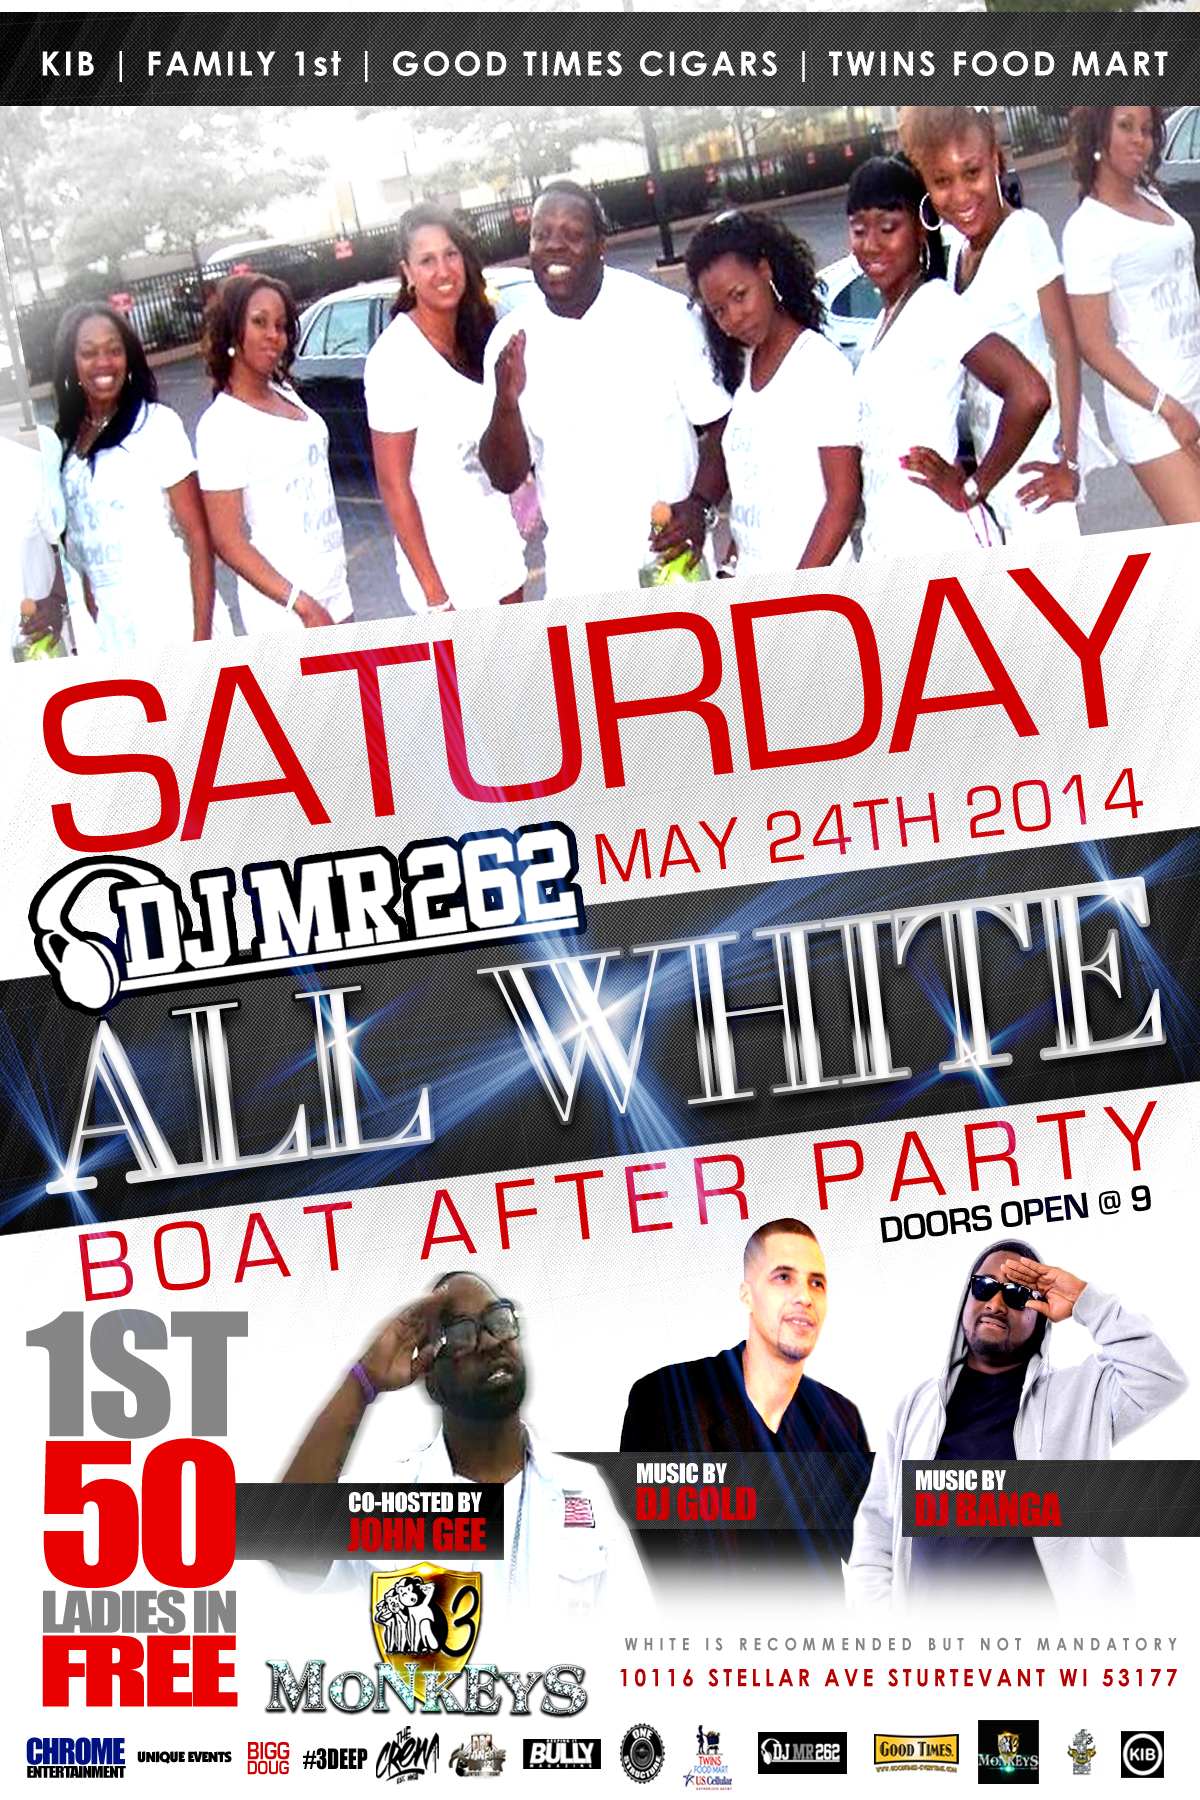 2014 boat after party DJ Mr. 262   All White Boat After Party